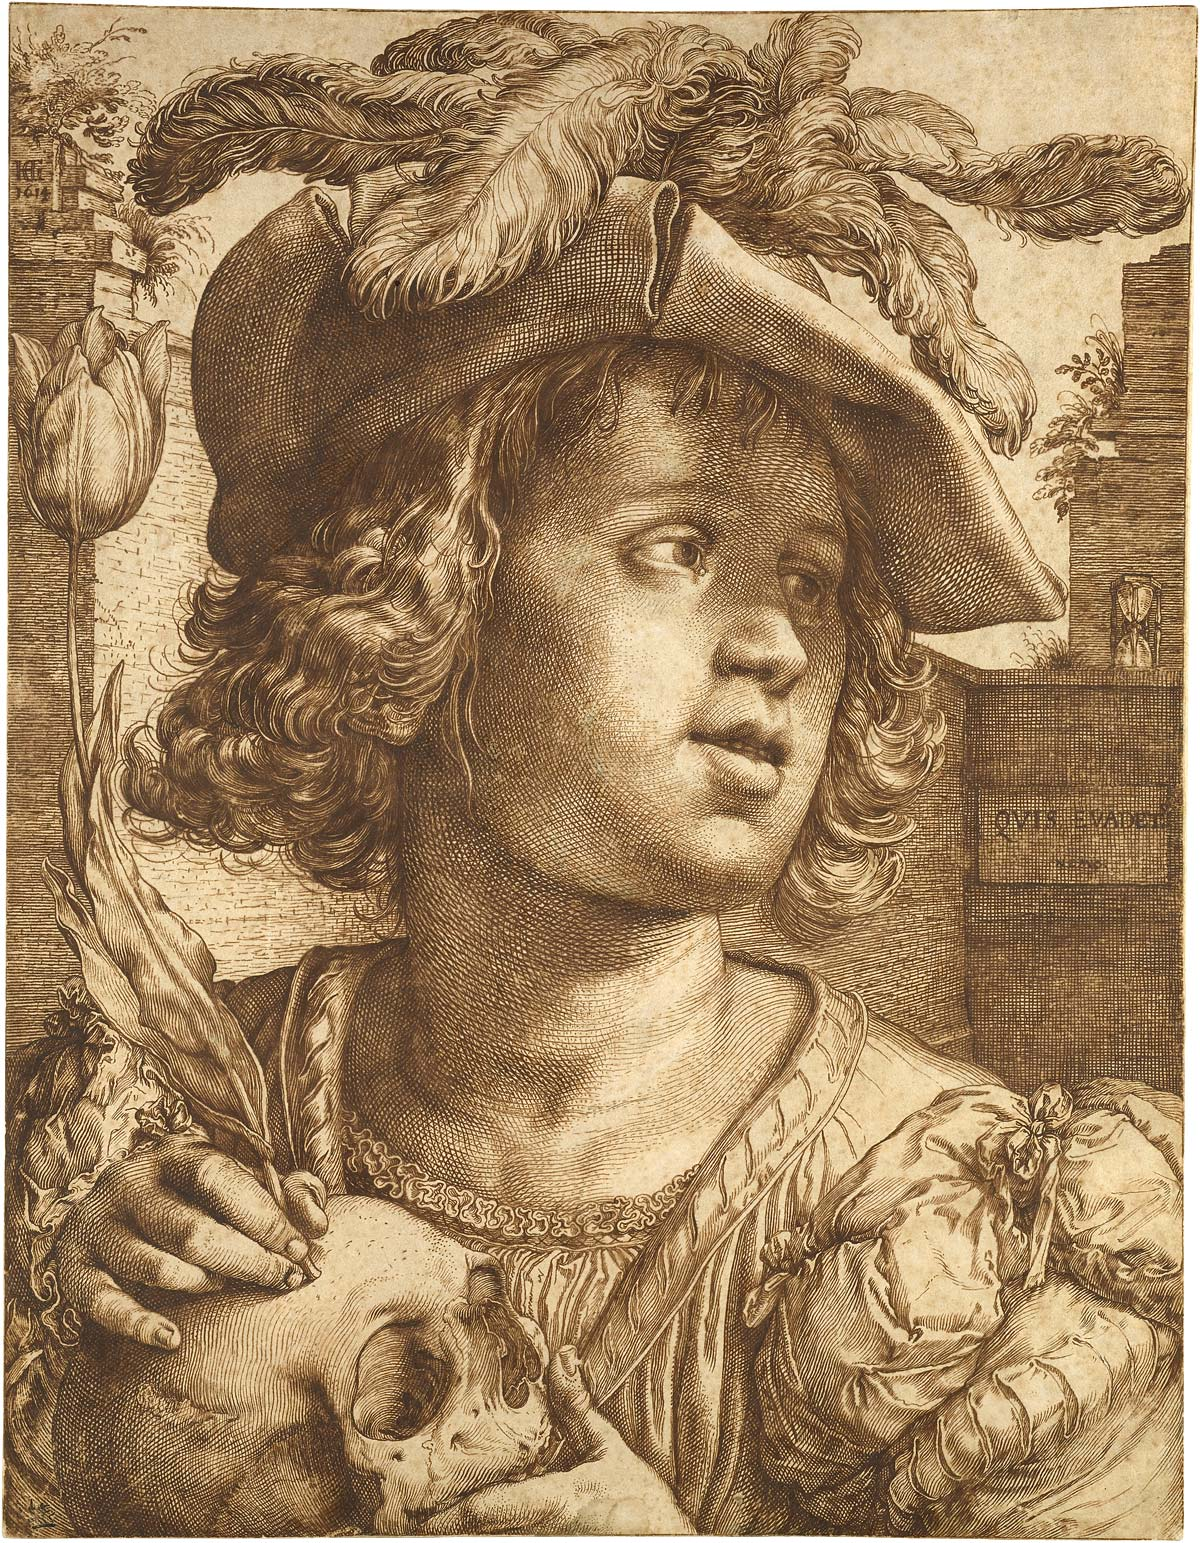 Image of Goltzius drawing